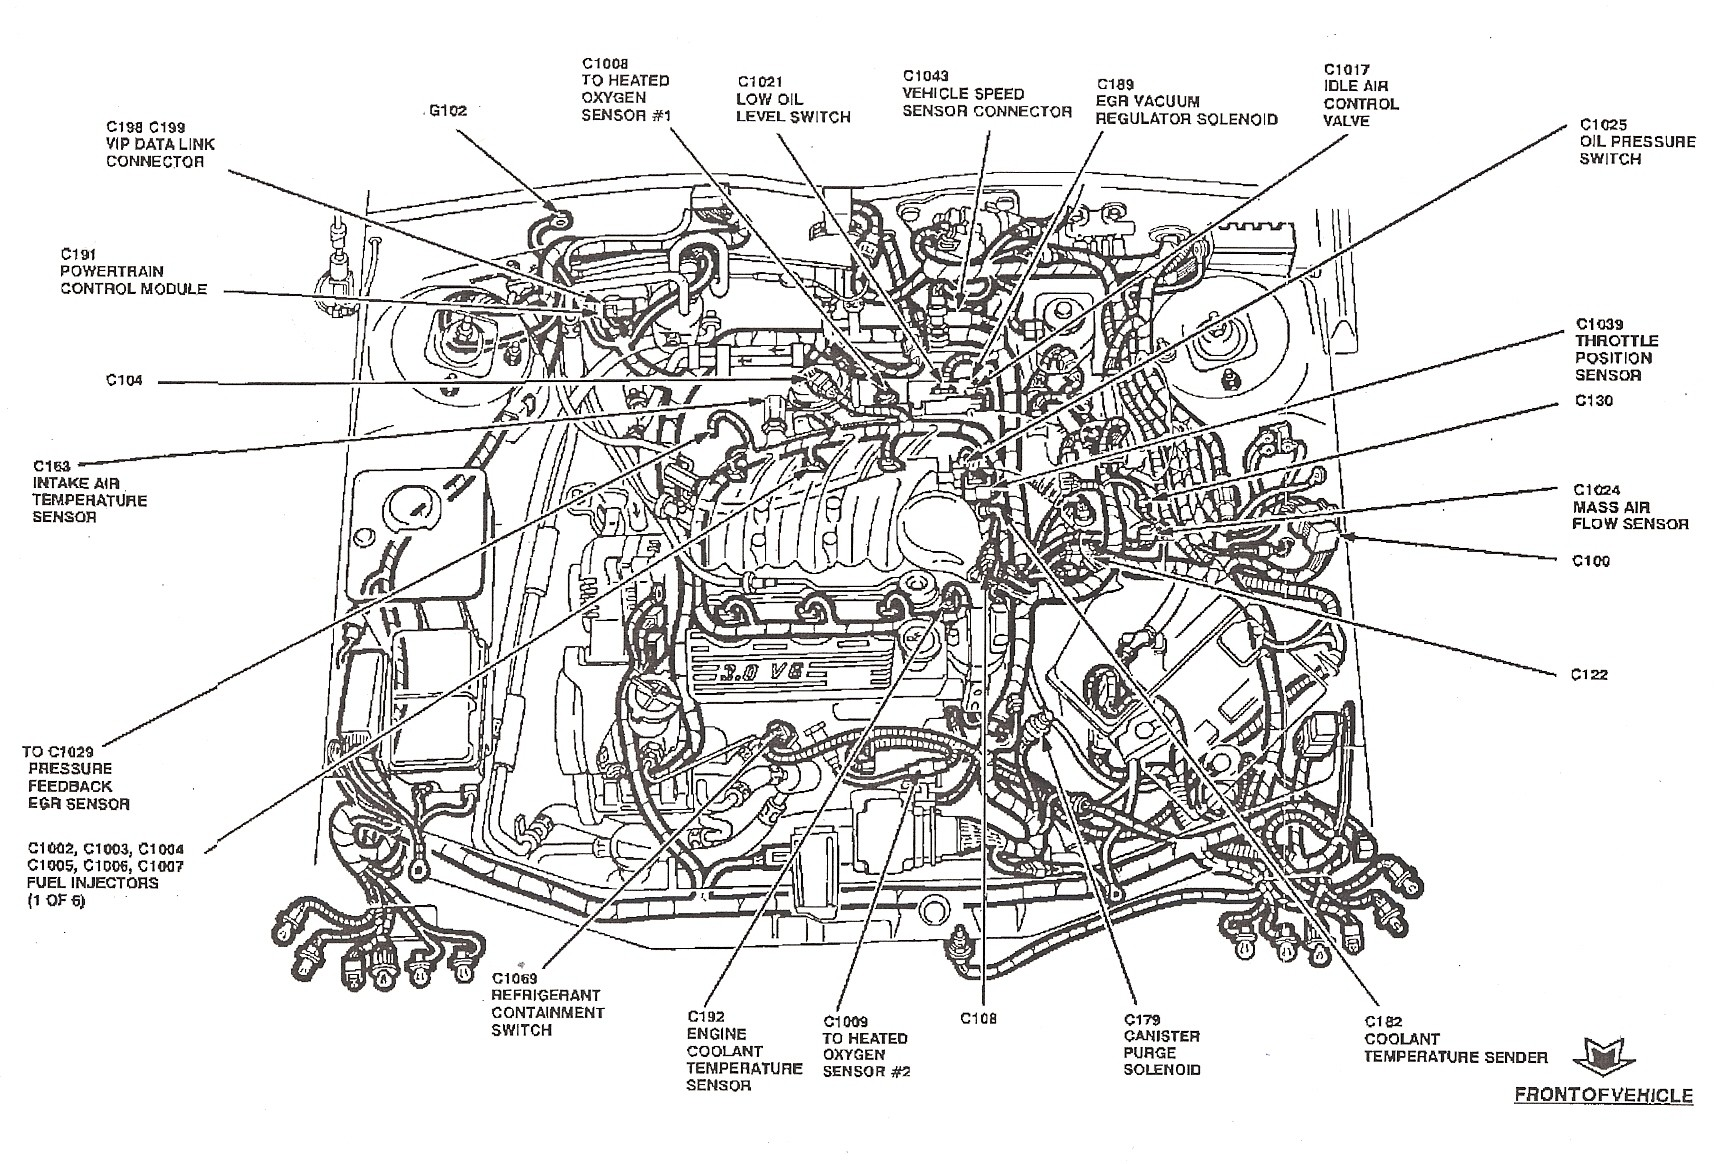 Wiring Diagram 2000 Ford Focus Zetec Schematics Diagrams Starter 2002 Cooling System House Symbols U2022 Rh Maxturner Co Coolant Headlamp Assembly